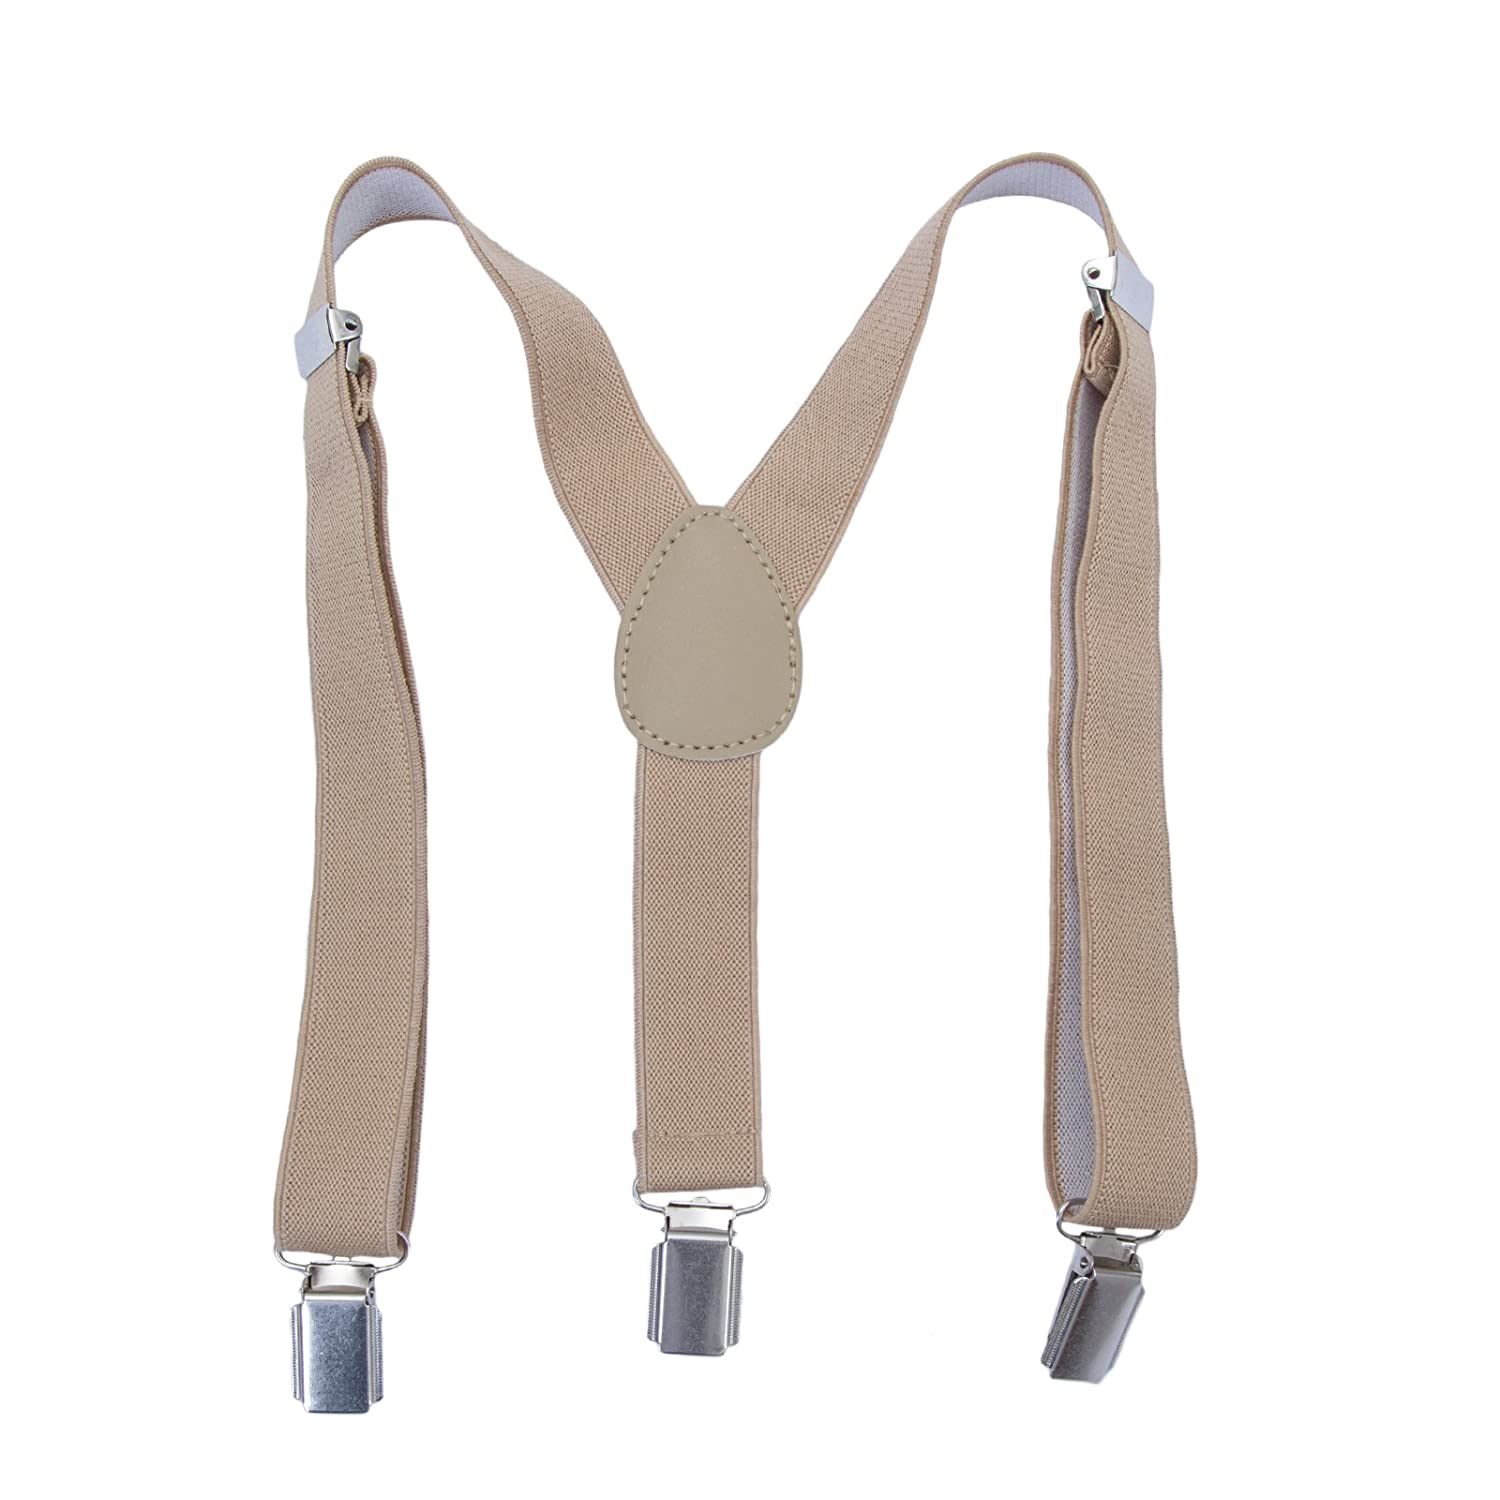 AWAYTR Boys Gilrs Adjustable Elasticated Braces - Clip on Y Suspenders for Children Kids or Babies